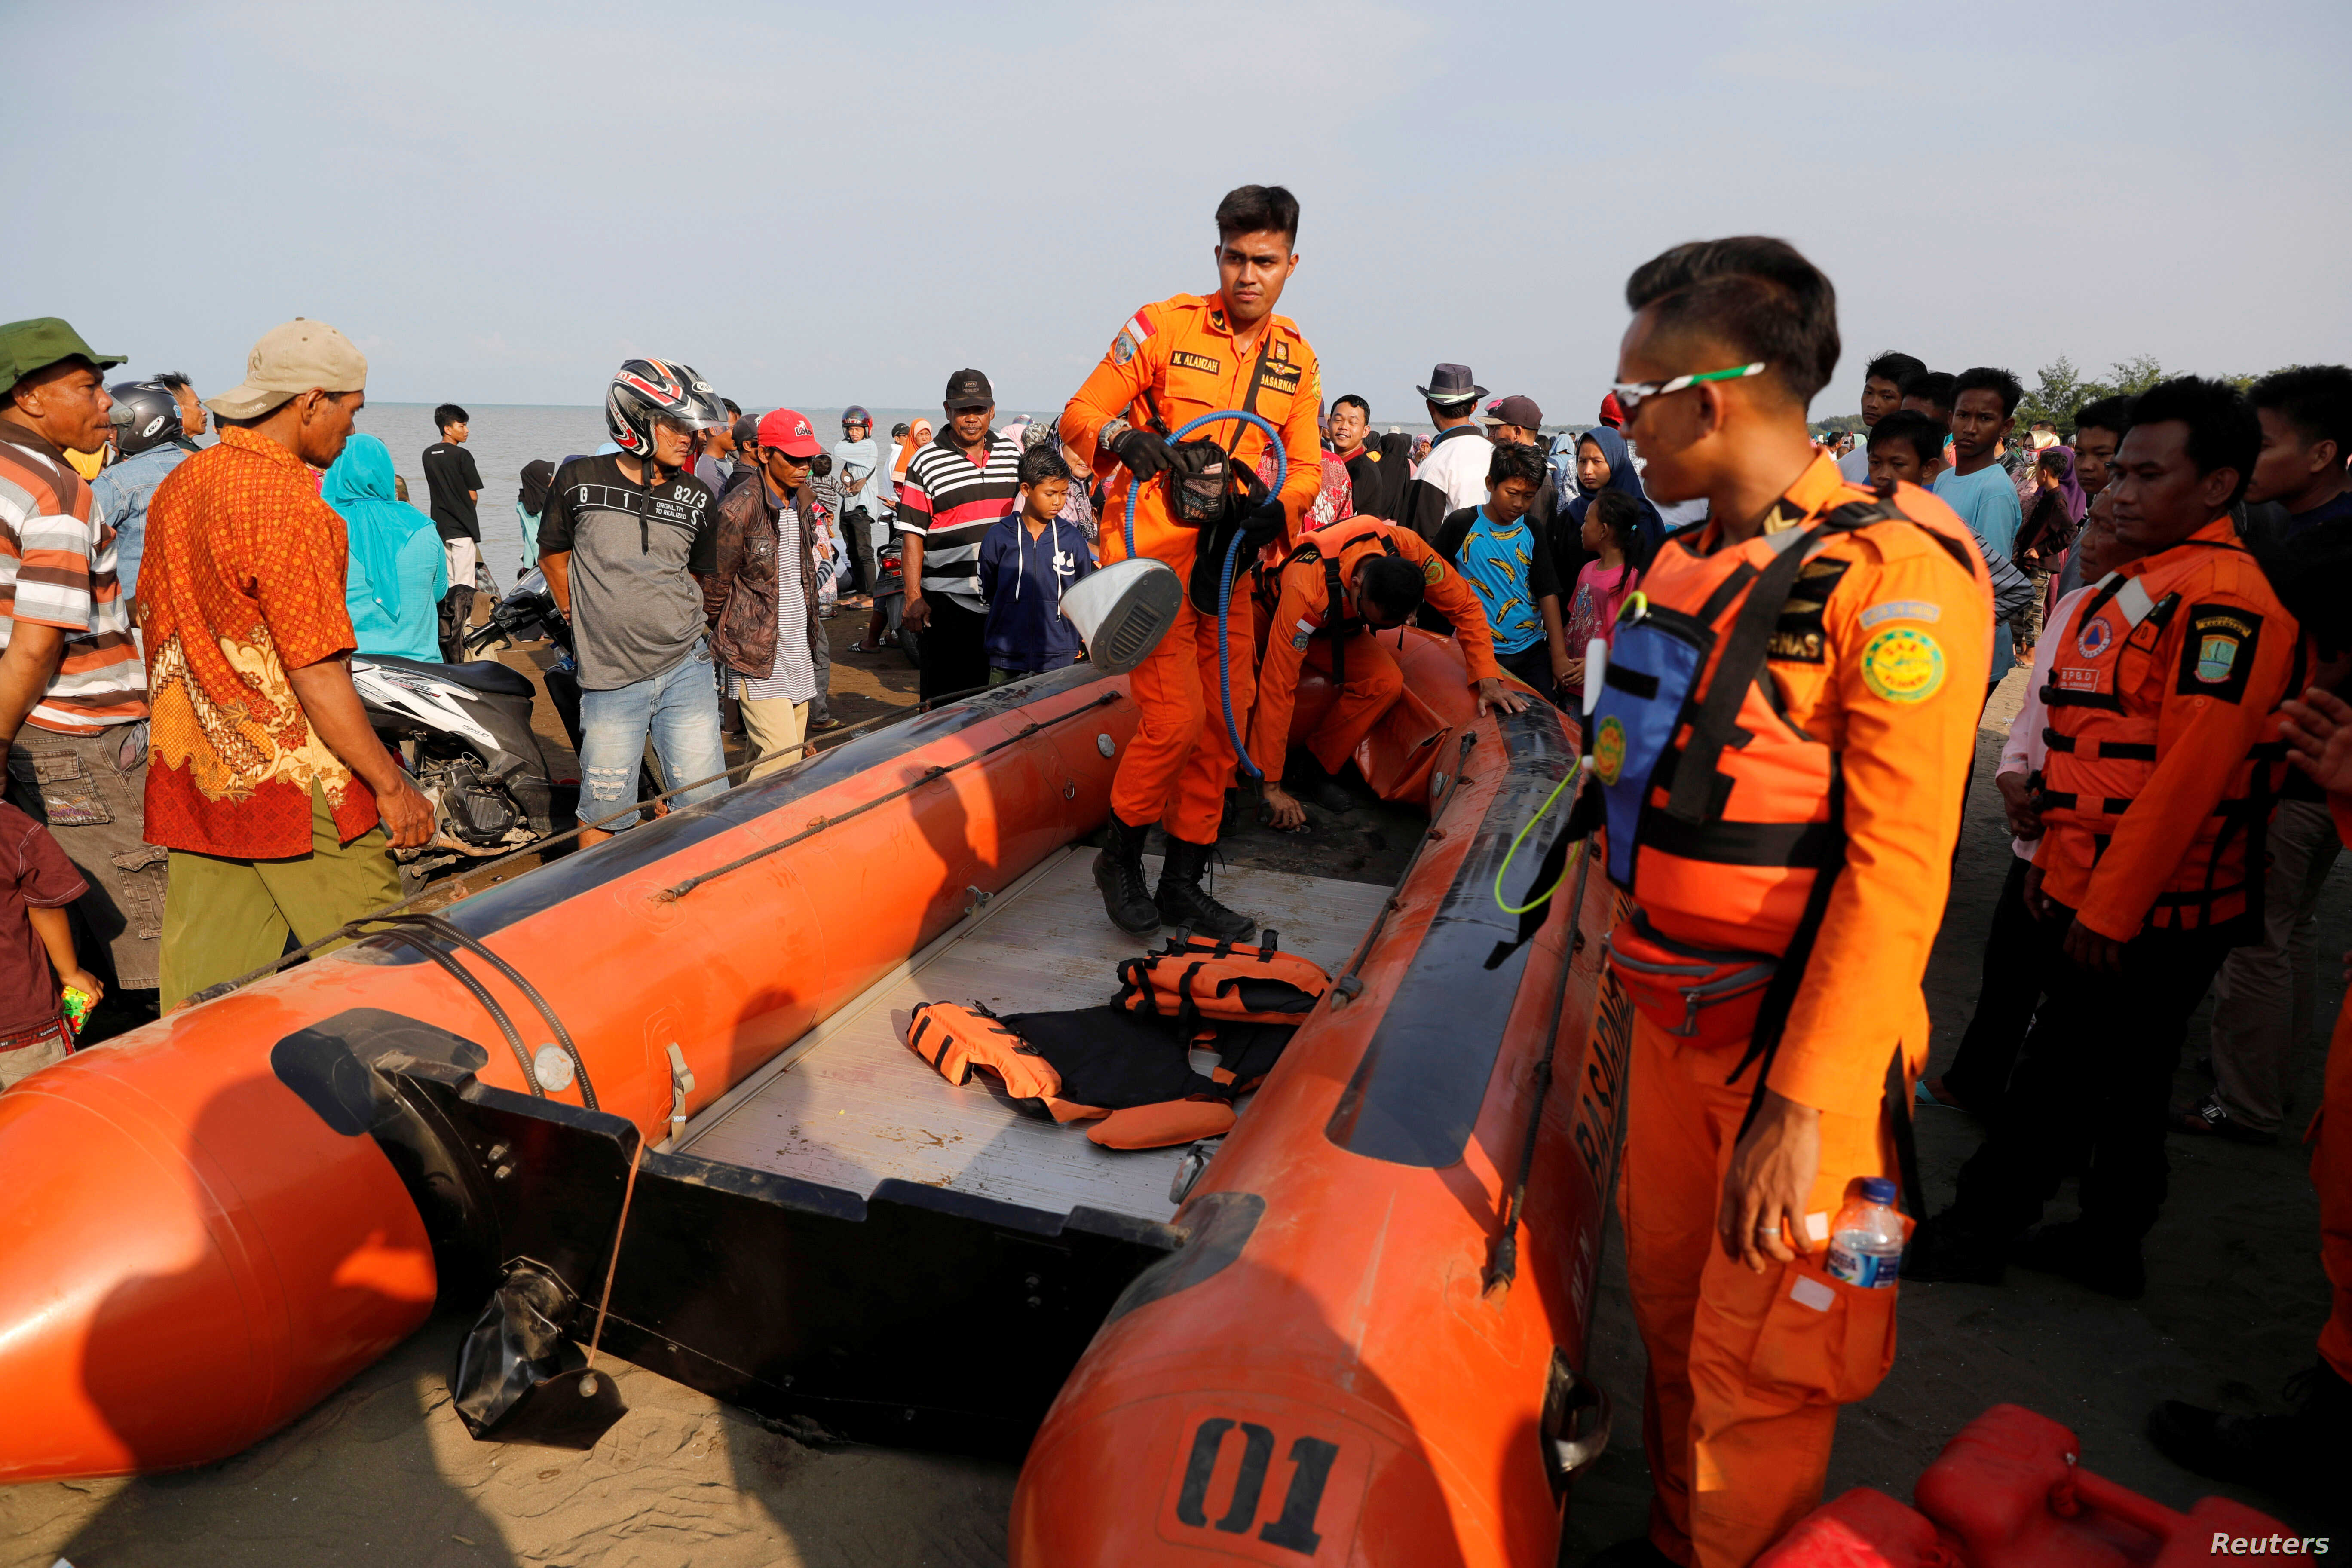 Rescue team members prepare the boat heading to the location of Lion Air, flight JT610, plane crash off the coast of Karawang regency, West Java province Indonesia, Oct. 29, 2018.